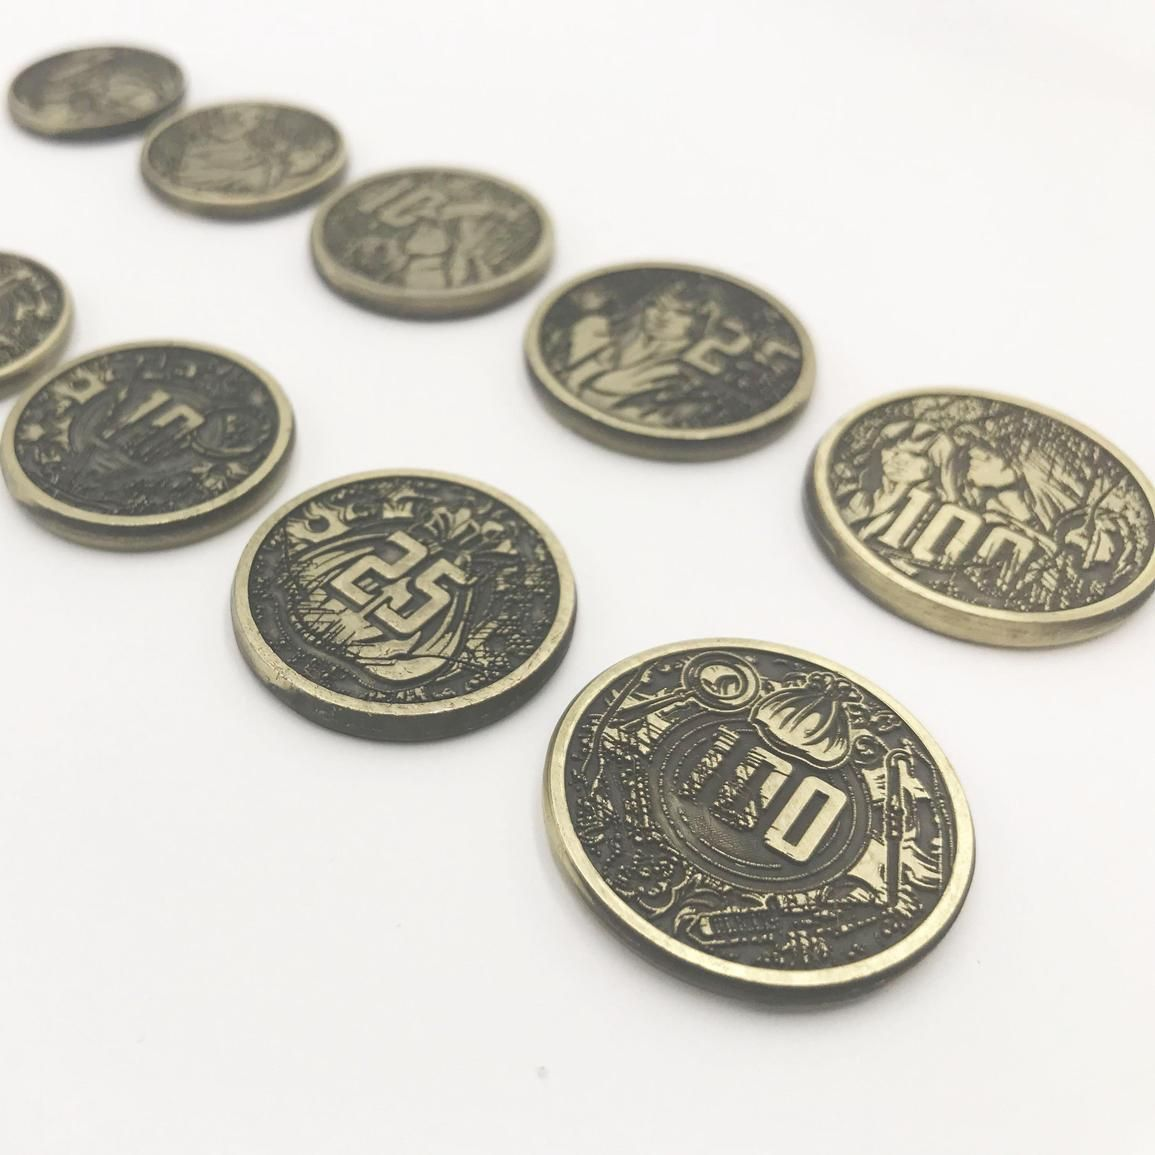 Adventure Coins Thieves Metal Coins Set Of 10 Norse Foundry In 2020 Coin Set Coins Coin Design Kings of metal dice, coins, pin and tabletop and rpg accessories since 2011. pinterest